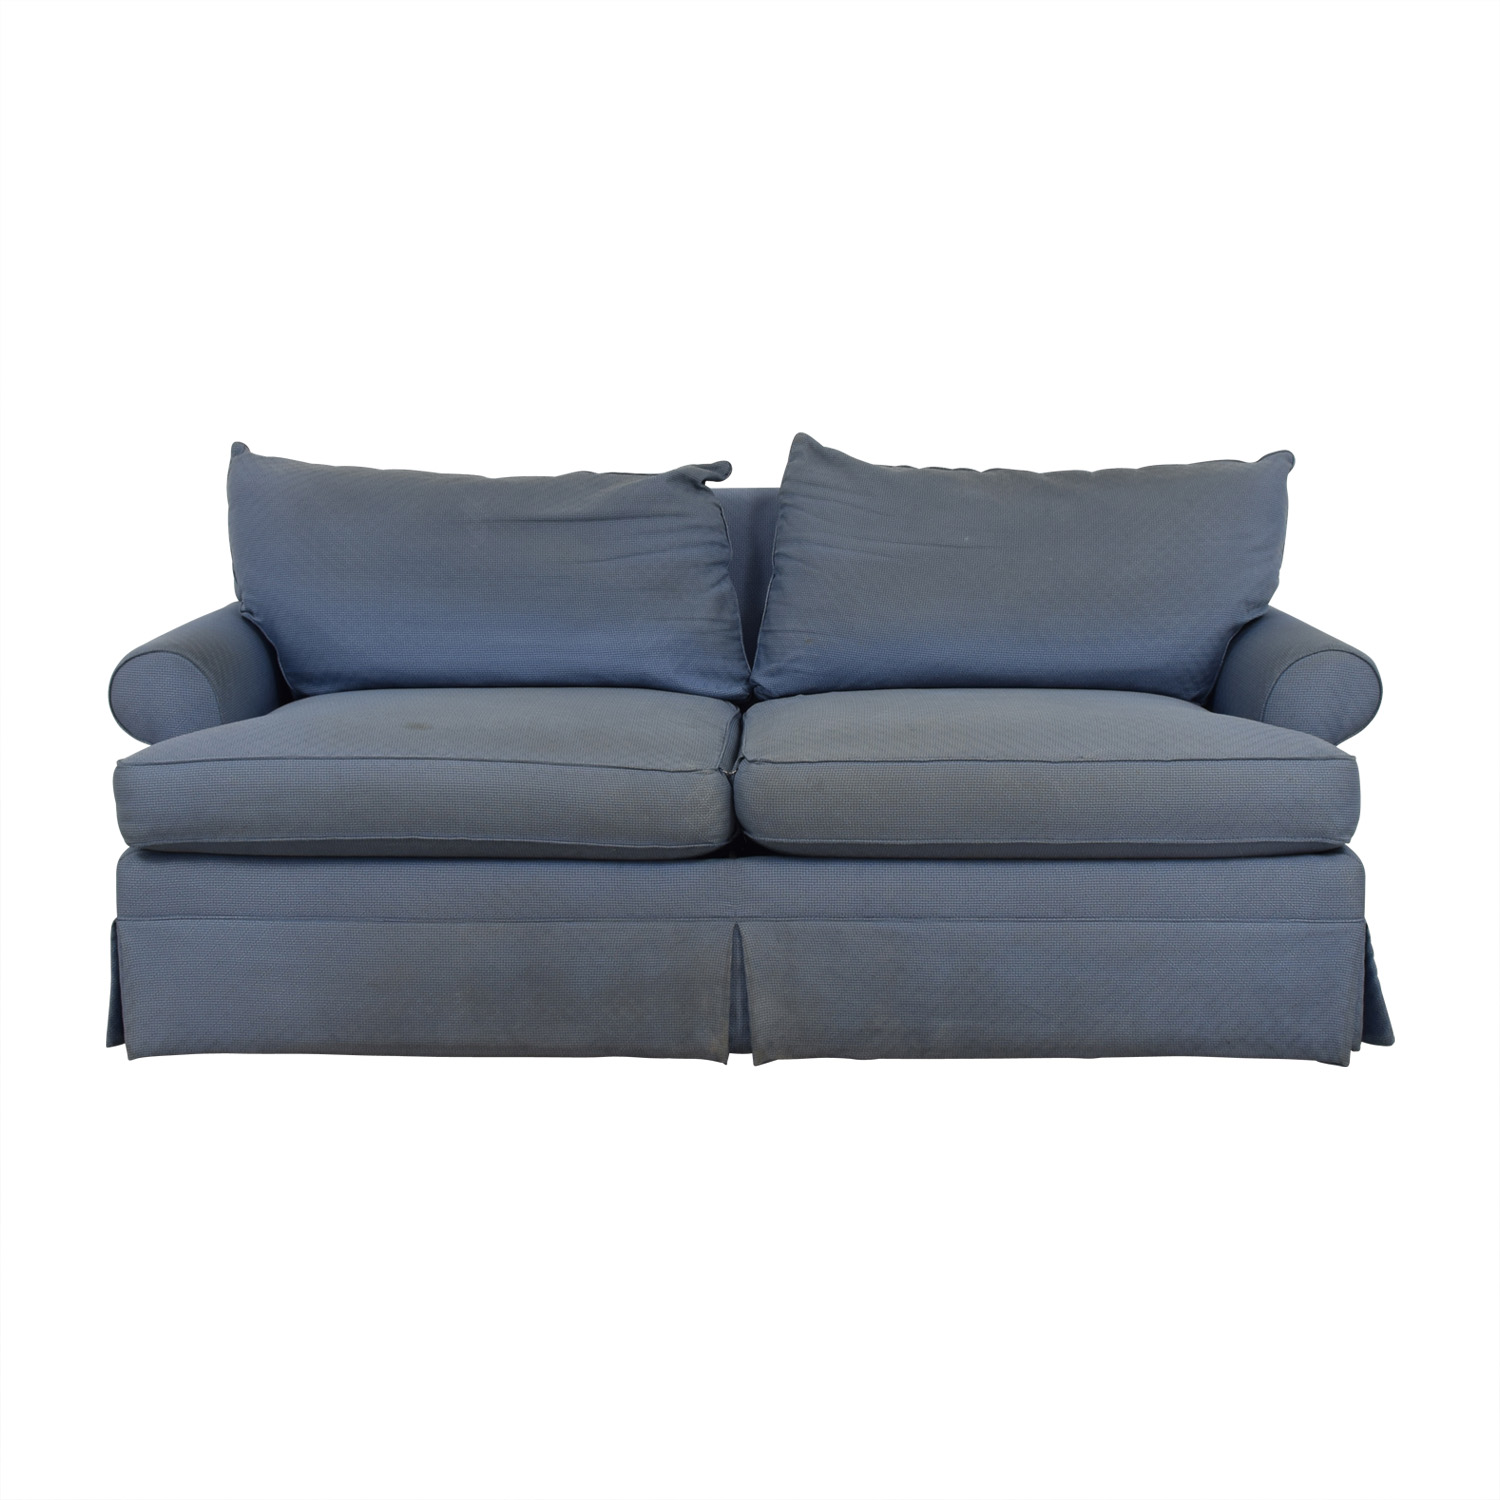 Ethan Allen Ethan Allen Blue Two-Cushion Sofa nyc